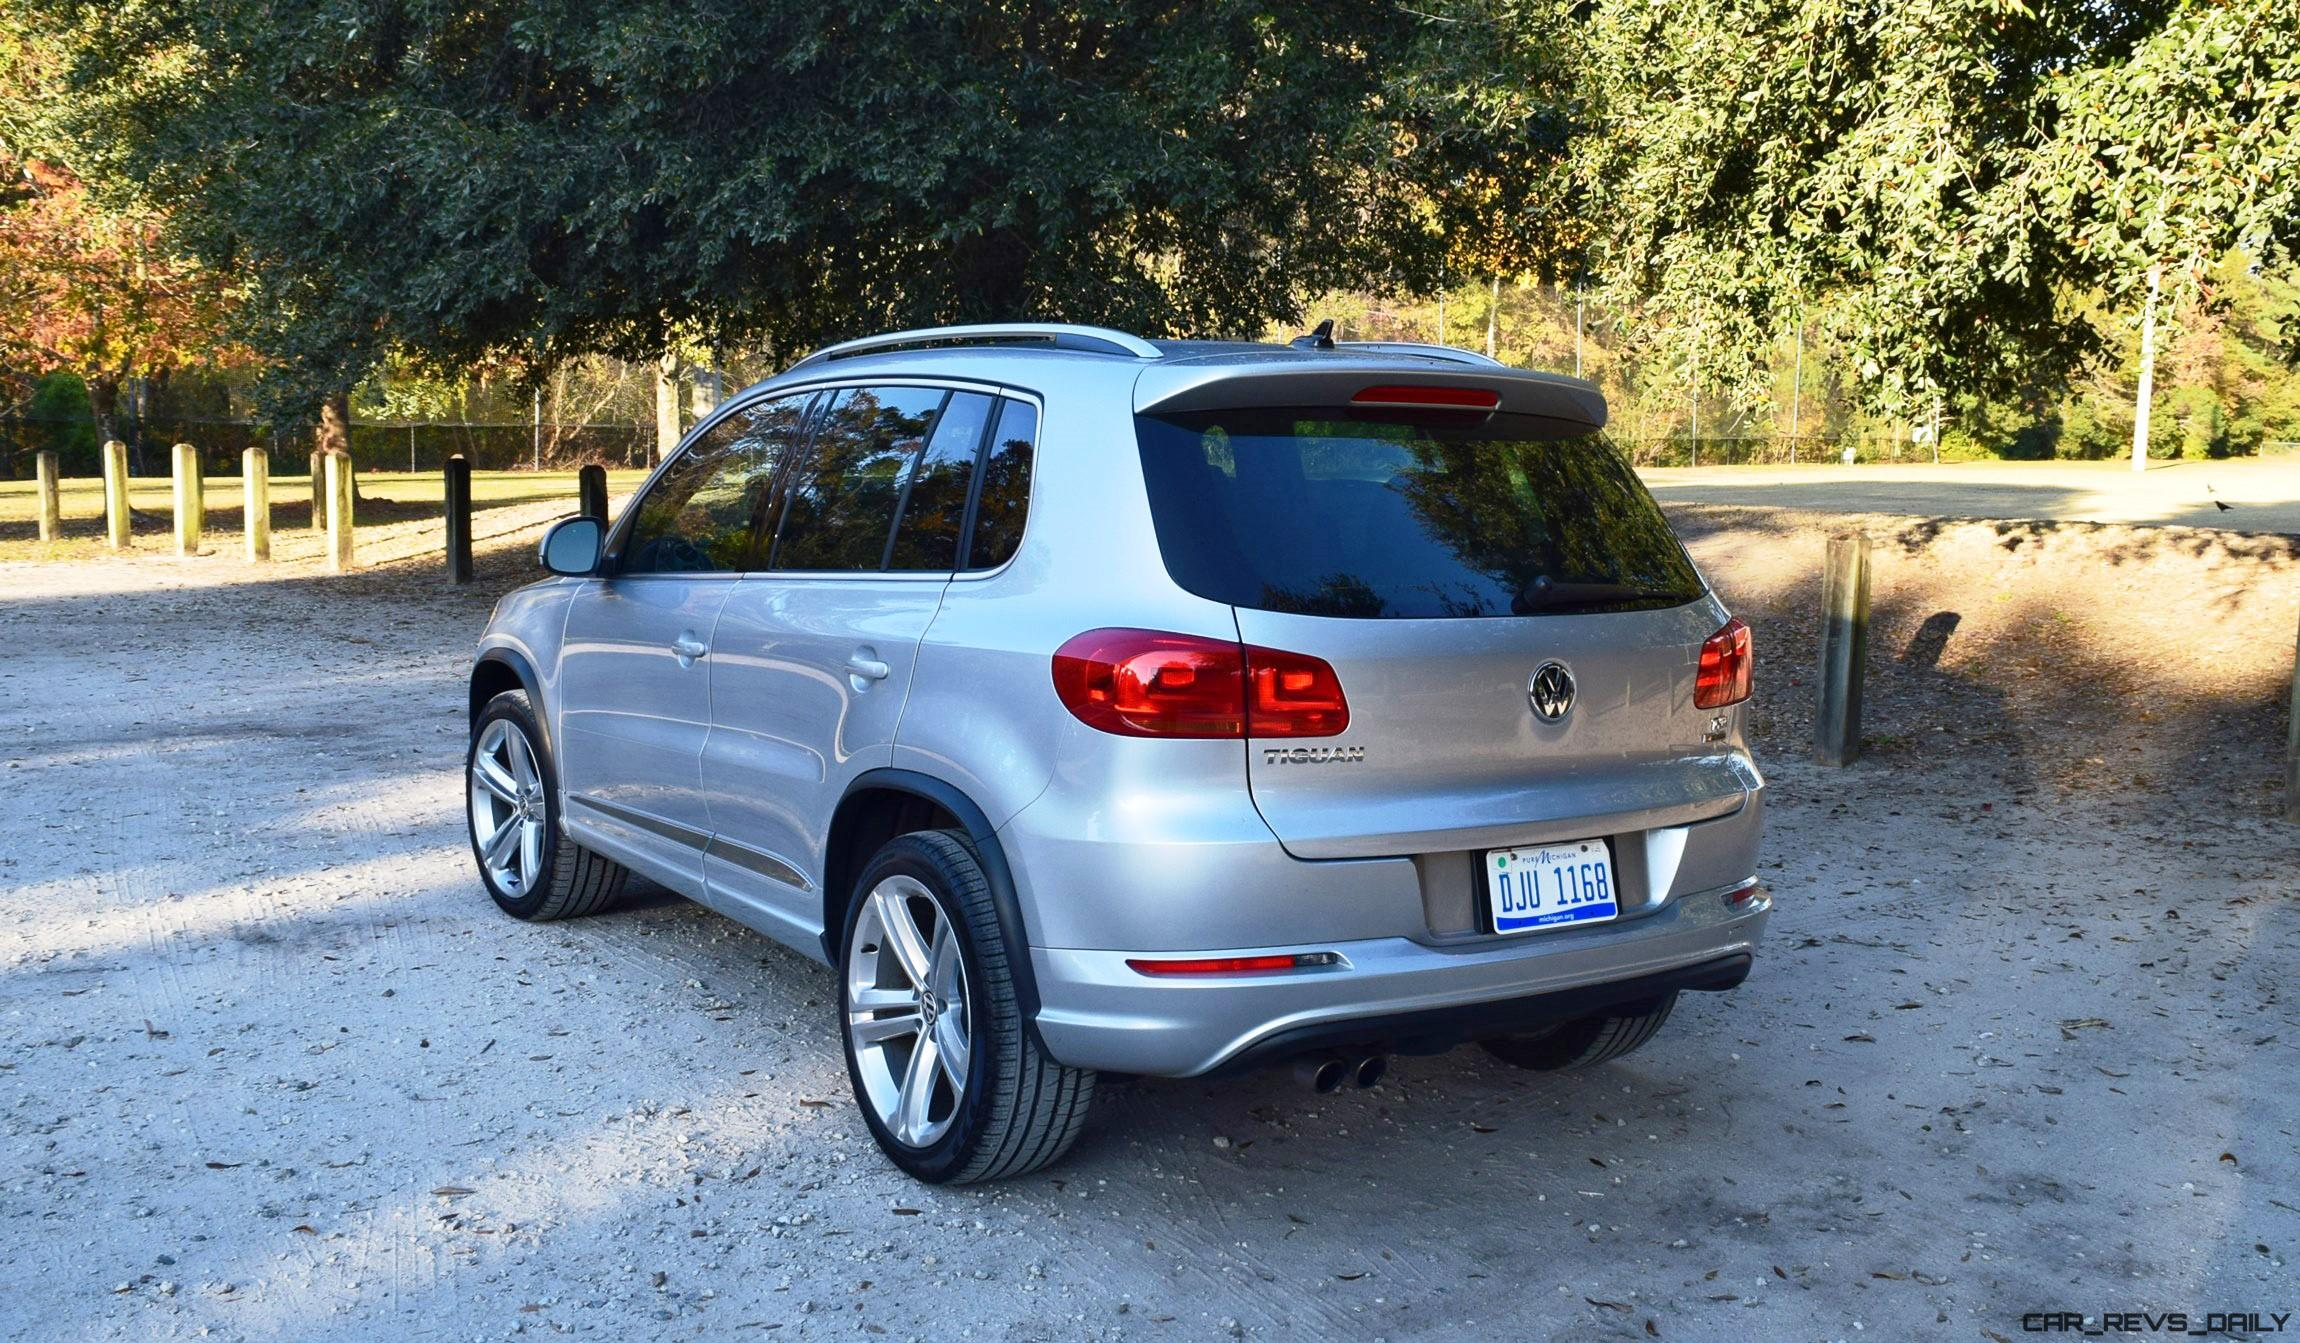 2016 vw tiguan r line review 15. Black Bedroom Furniture Sets. Home Design Ideas